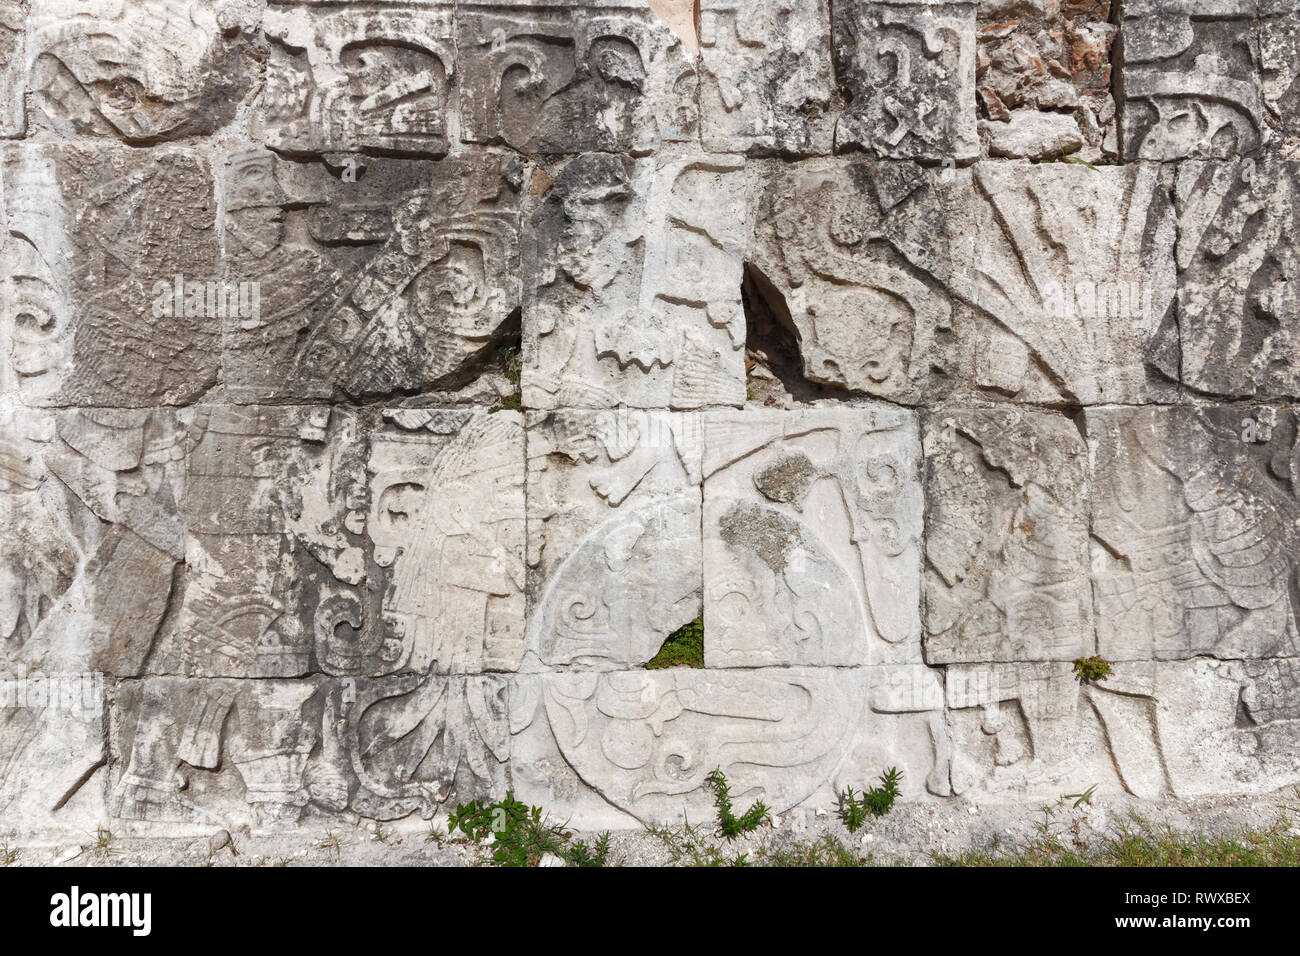 Close up of a large Mayan stone carving depicting soldiers, royalty and possibly a King, from the Mayan city of Chechen Itza - Stock Image